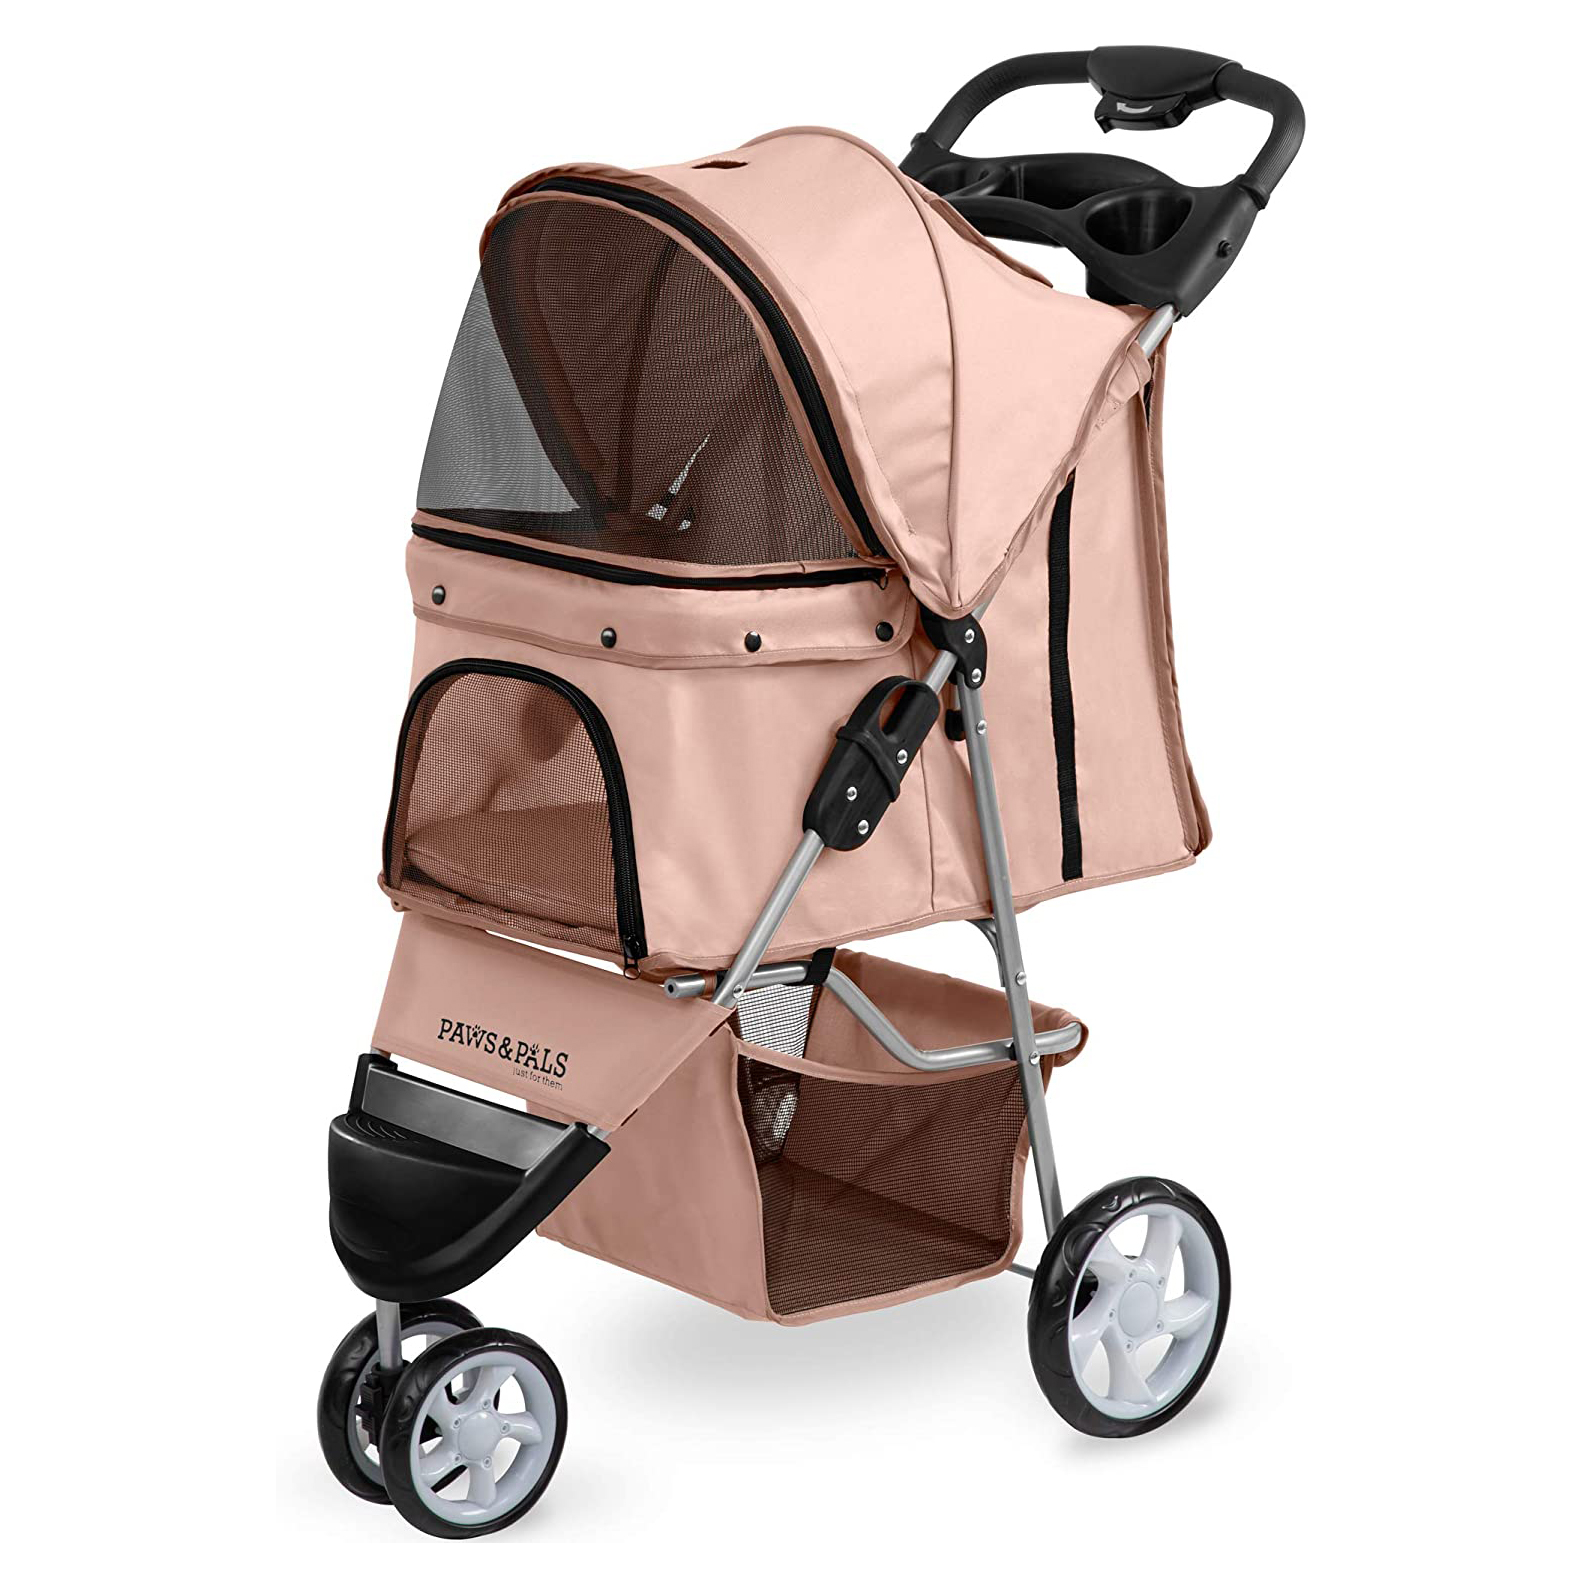 paws-and-pals-dog-stroller-3-wheeler-elite-jogger